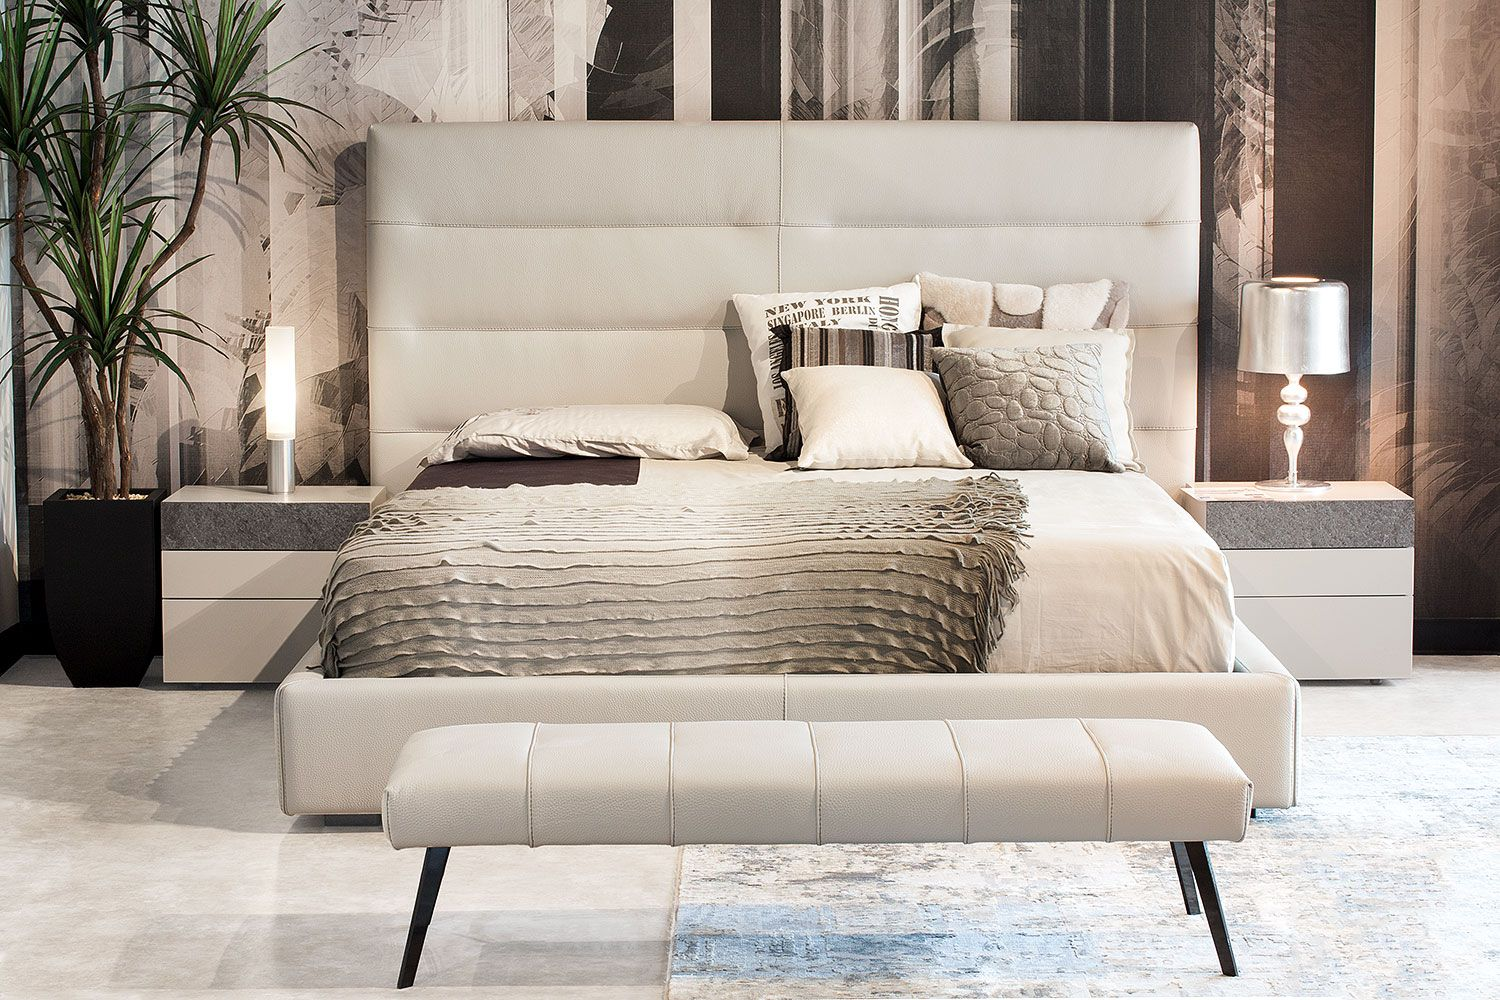 Decorating Tips for Modern Bedrooms